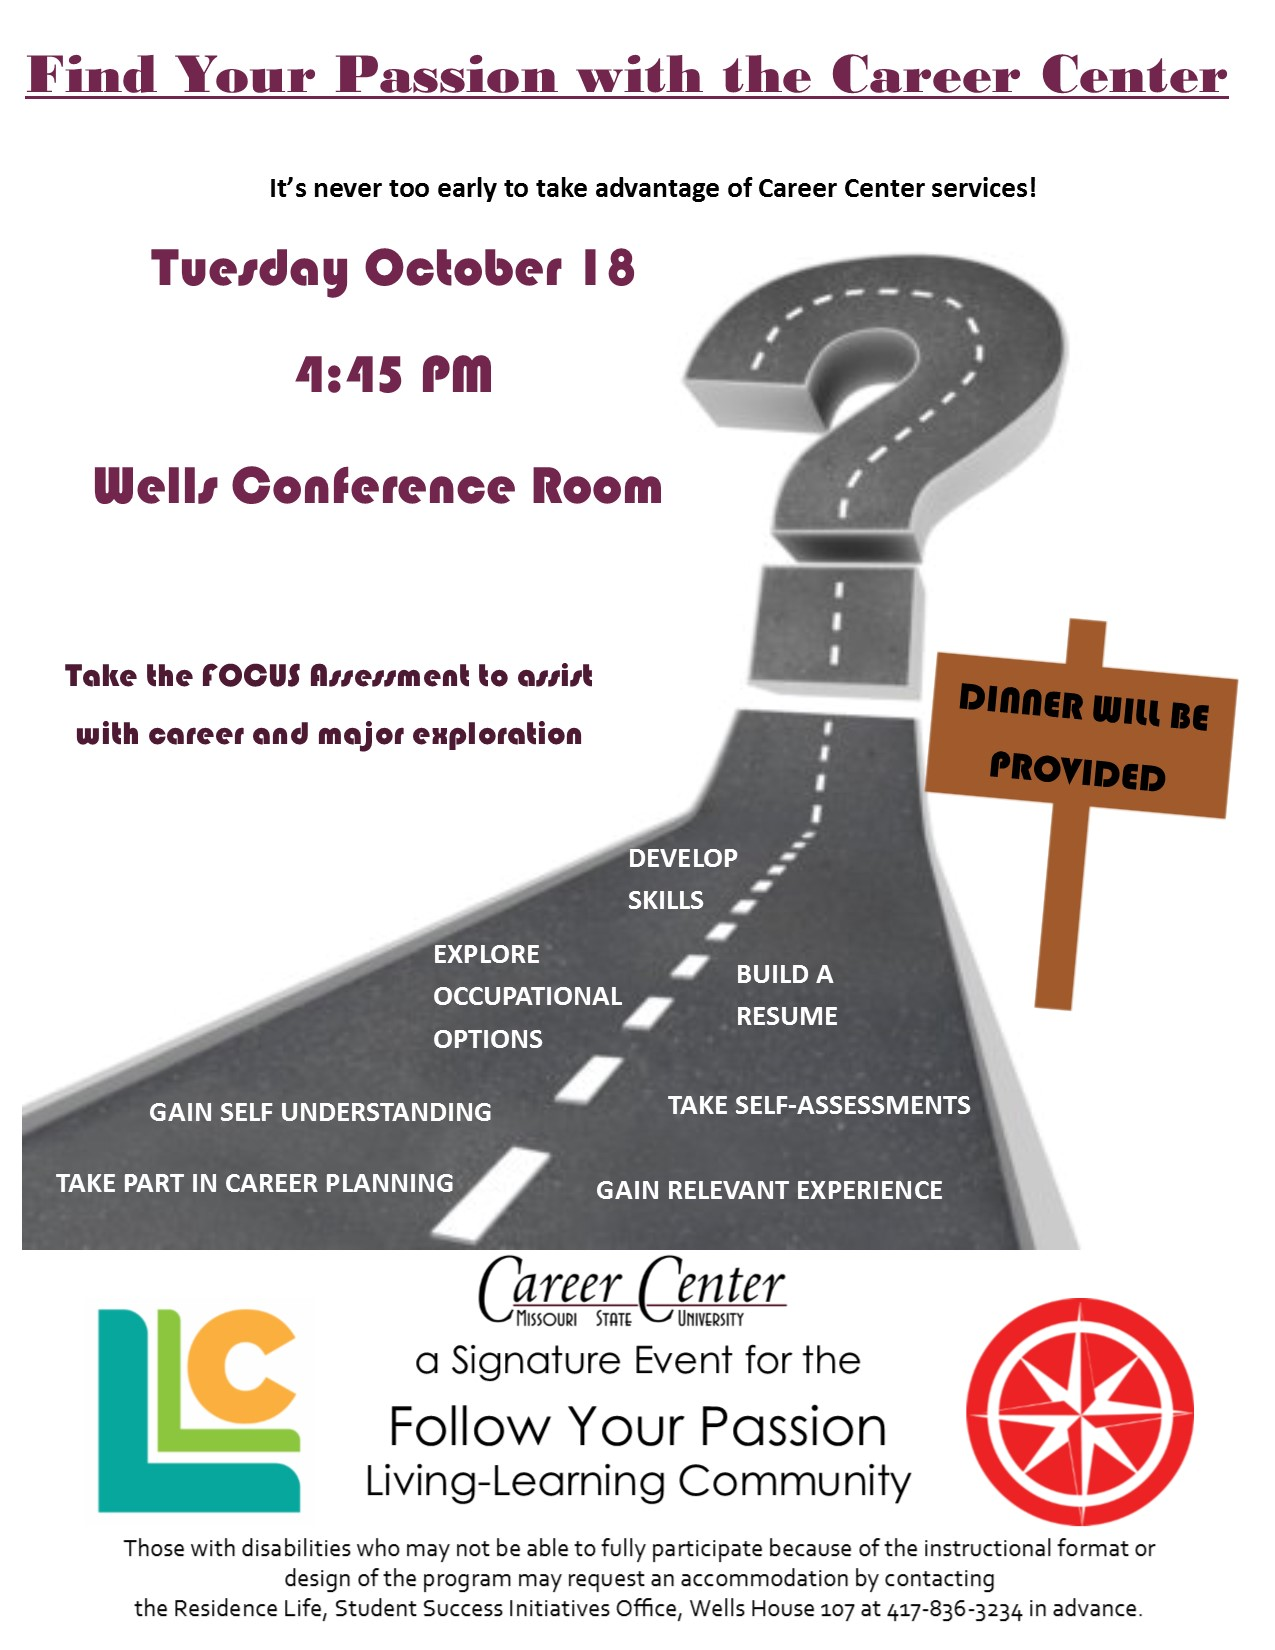 Find Your Passion With The Career Center